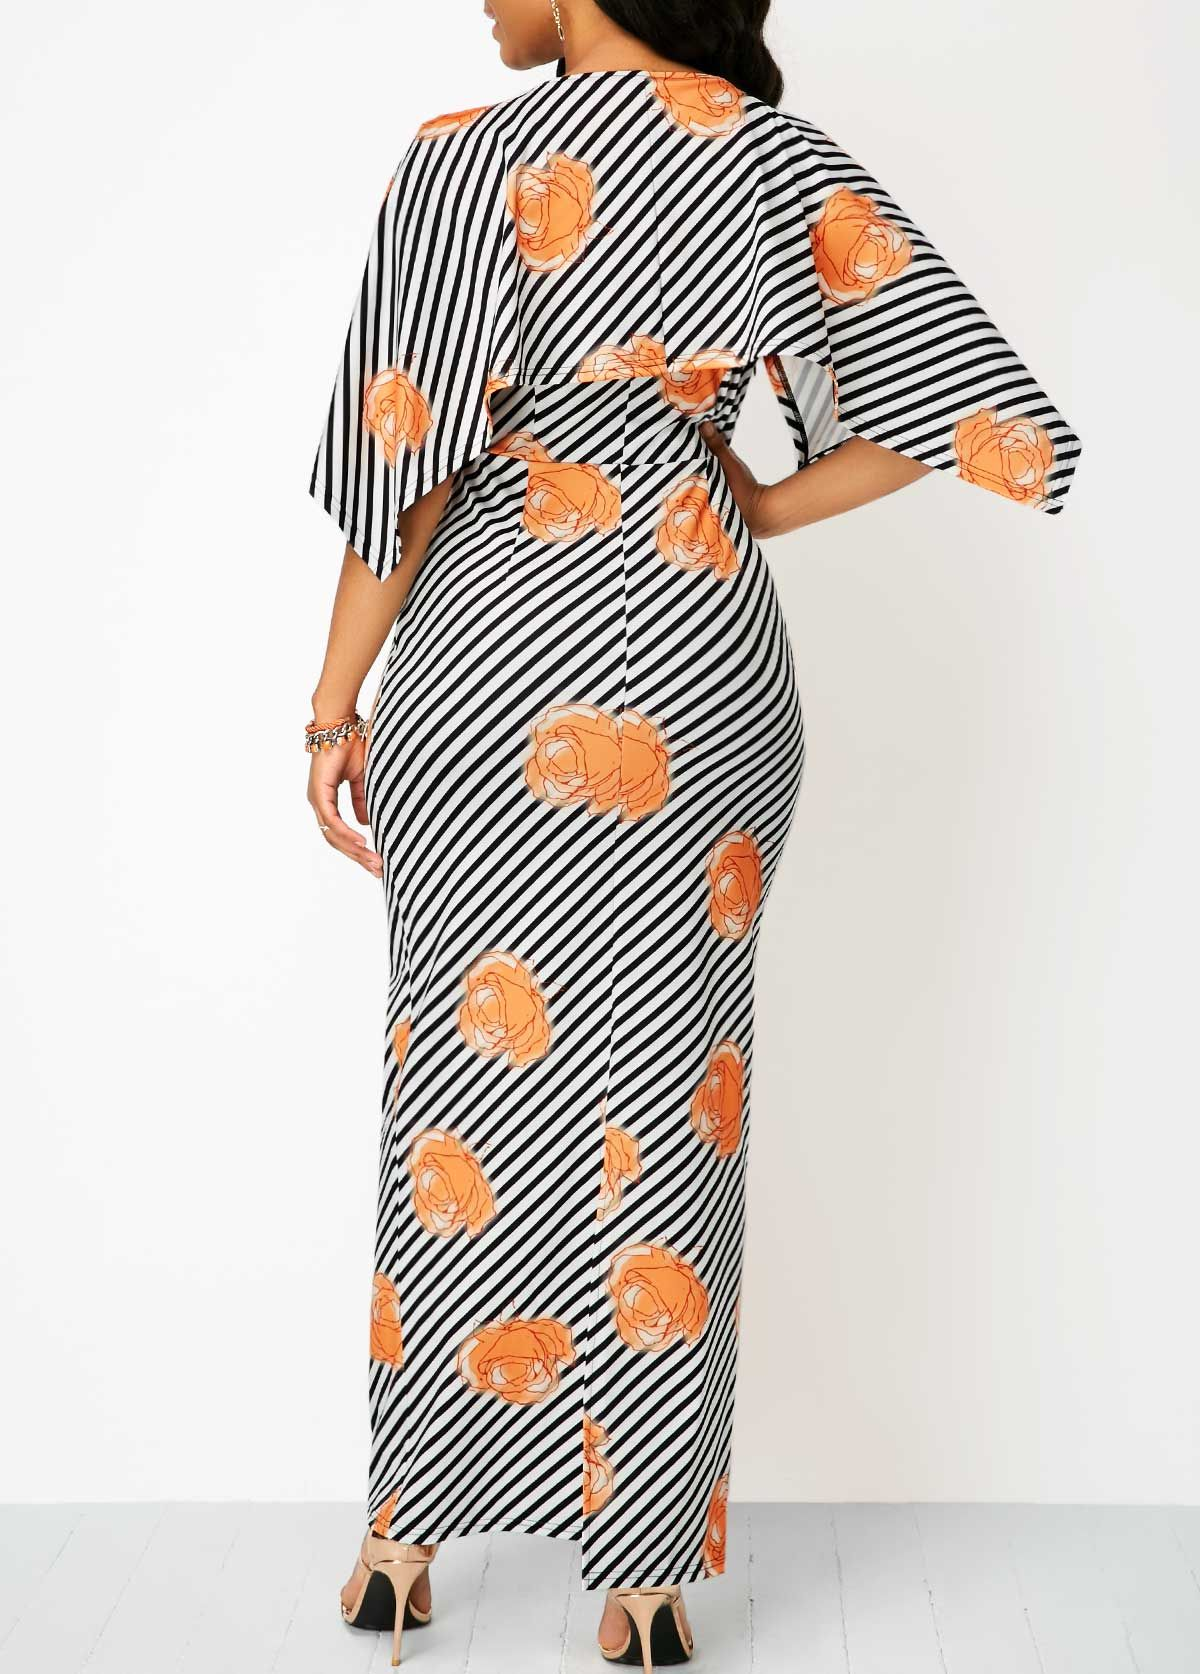 7e8c9f25328 Half Sleeve Striped V Neck Maxi Dress on sale only US 34.90 now